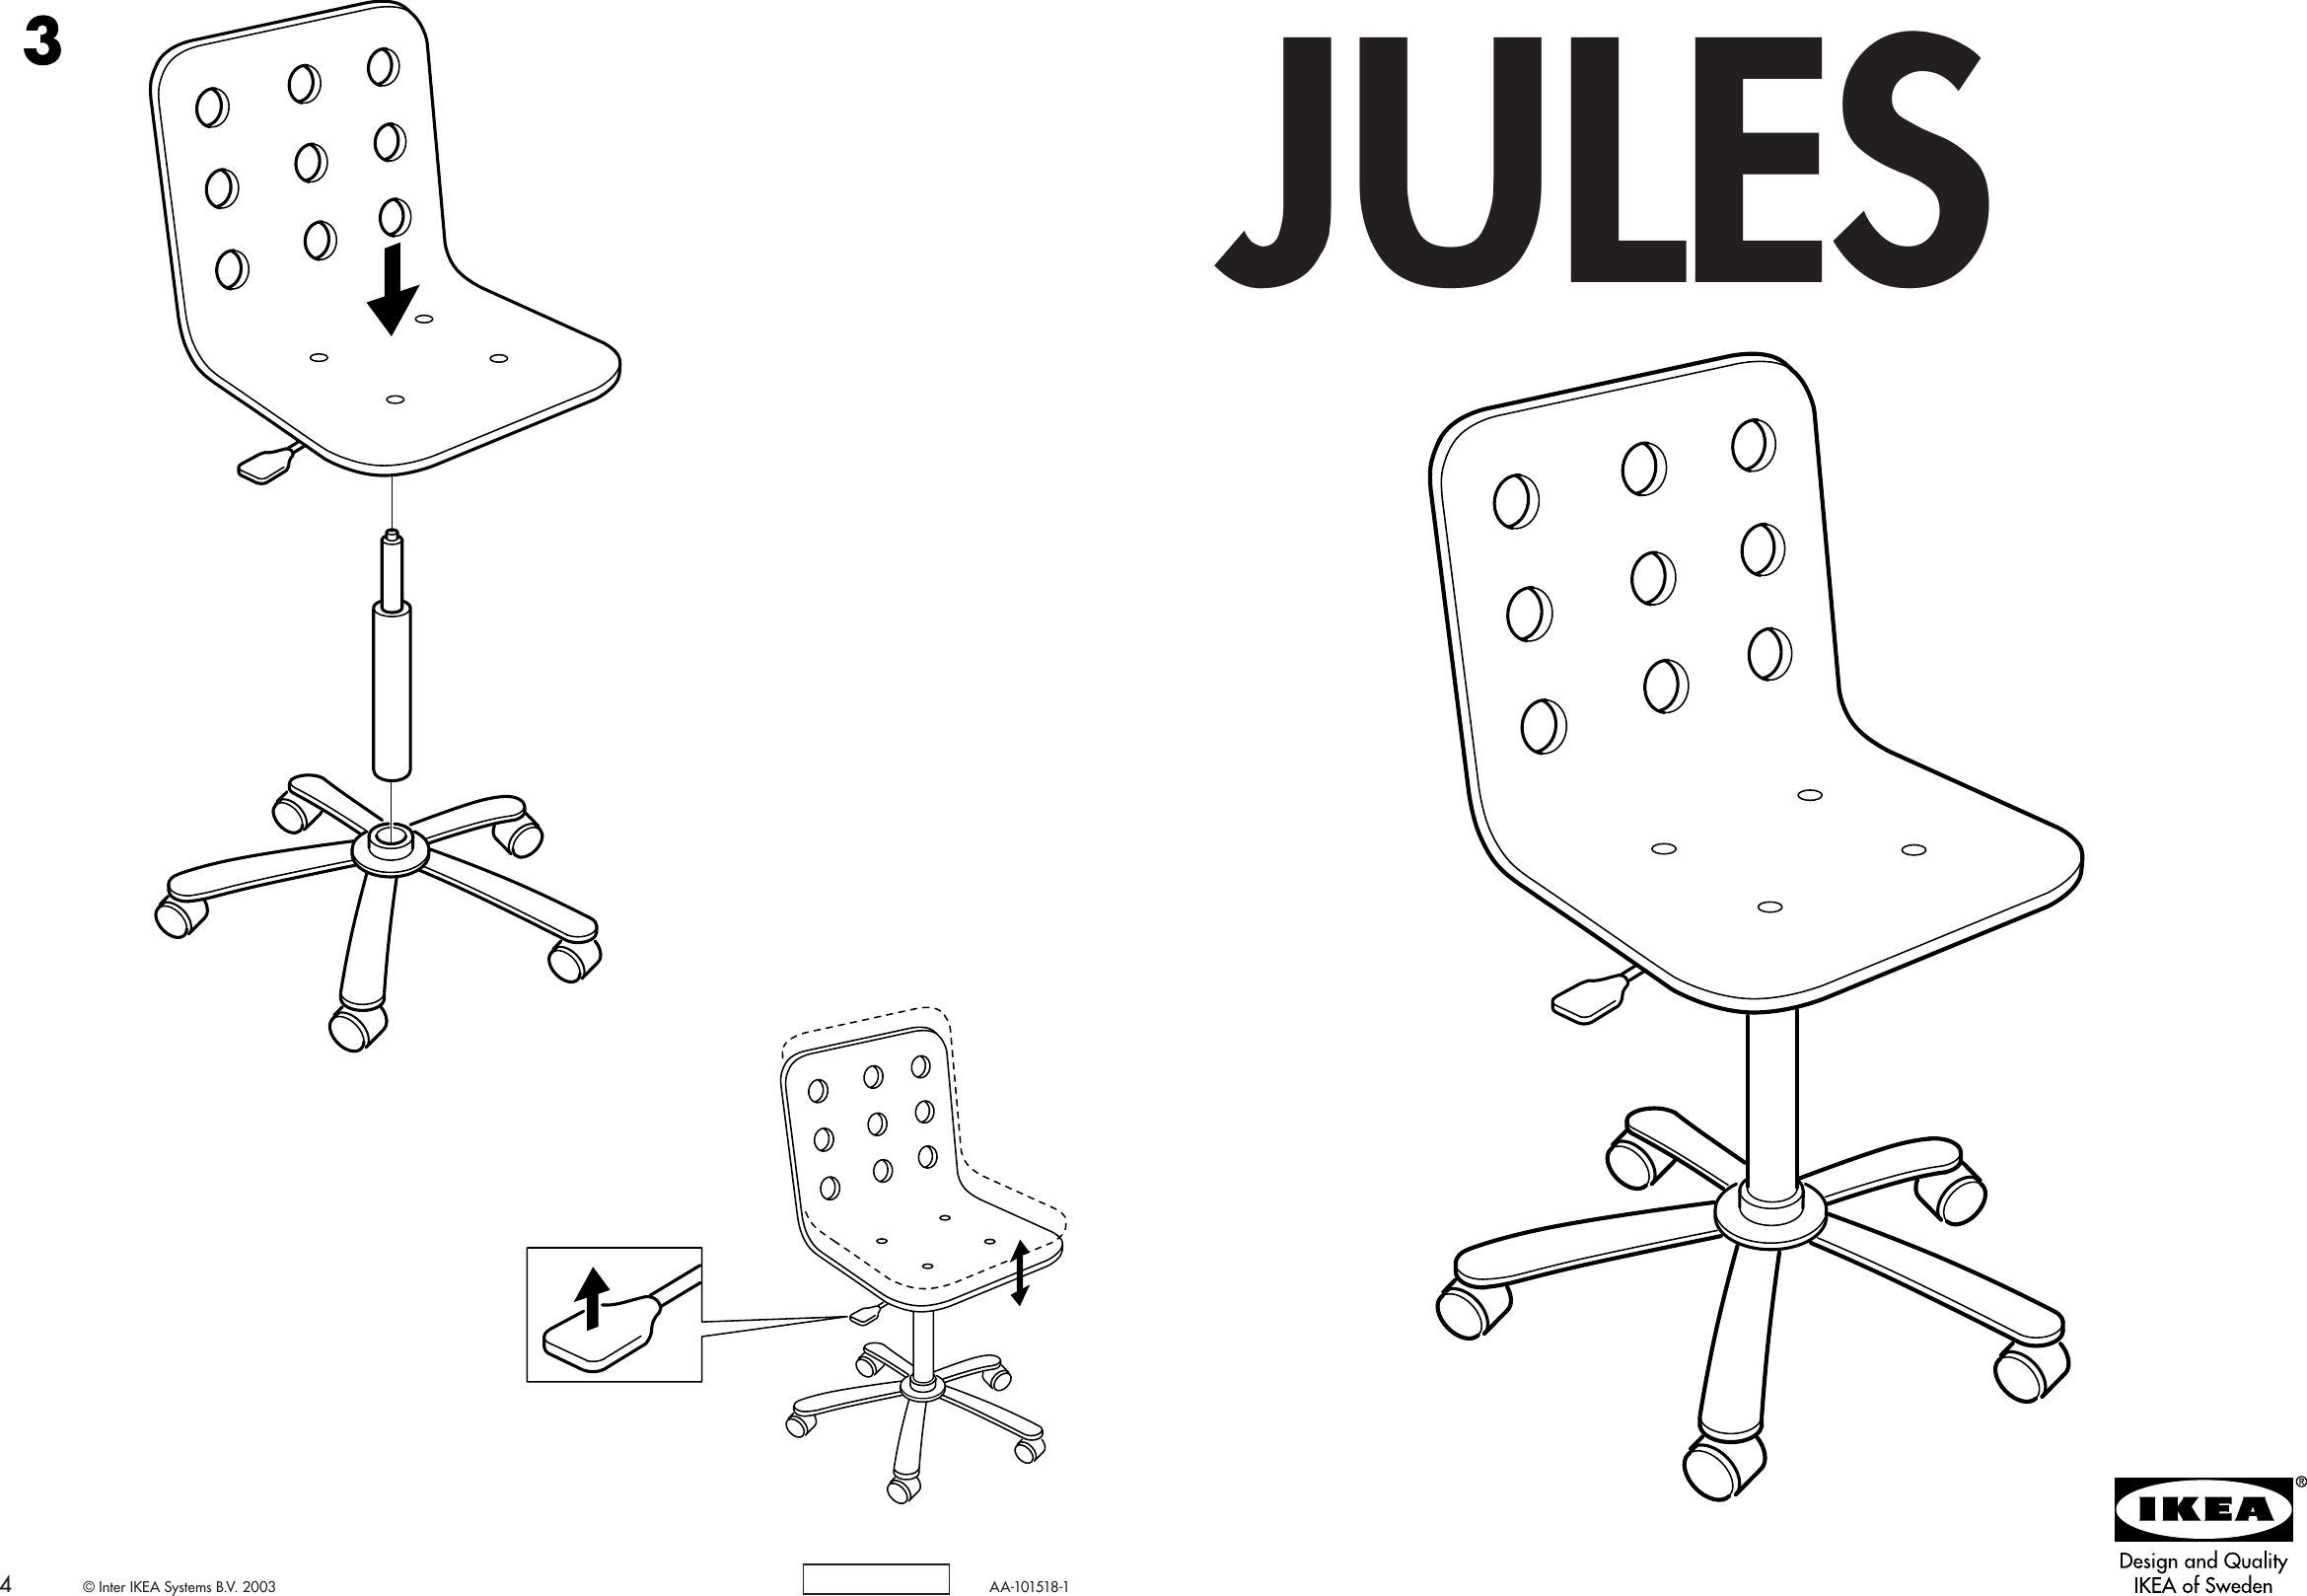 ikea jules chair burgundy accent chairs living room jr desk assembly instruction